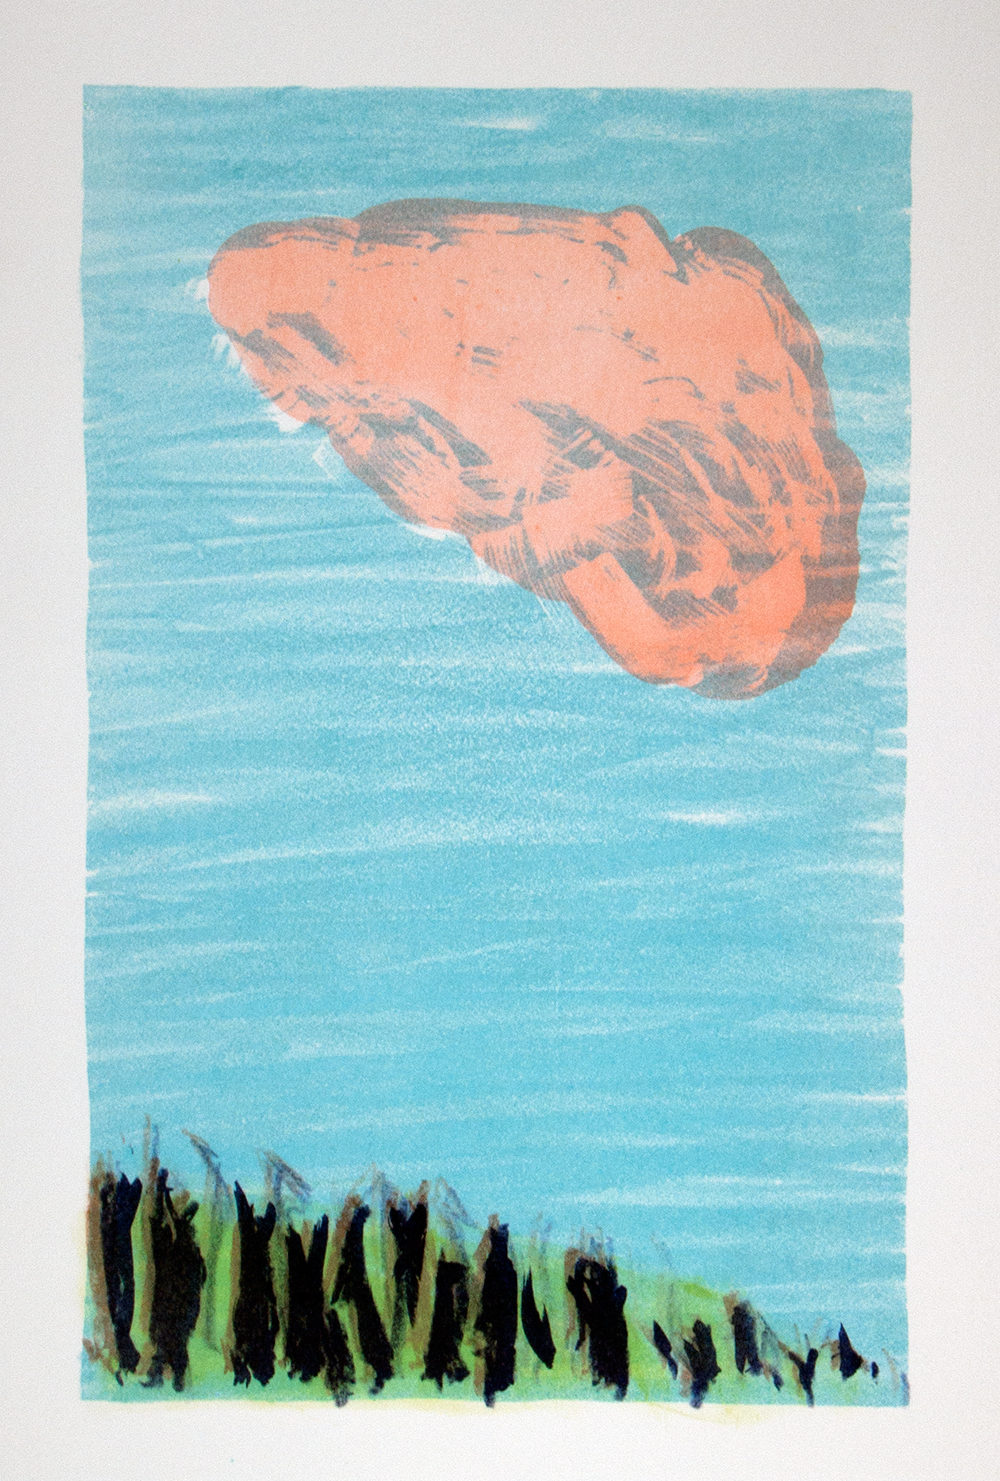 'Cloud' from the  portfolio 'Alle Dinghe'  containing 6 lithographs